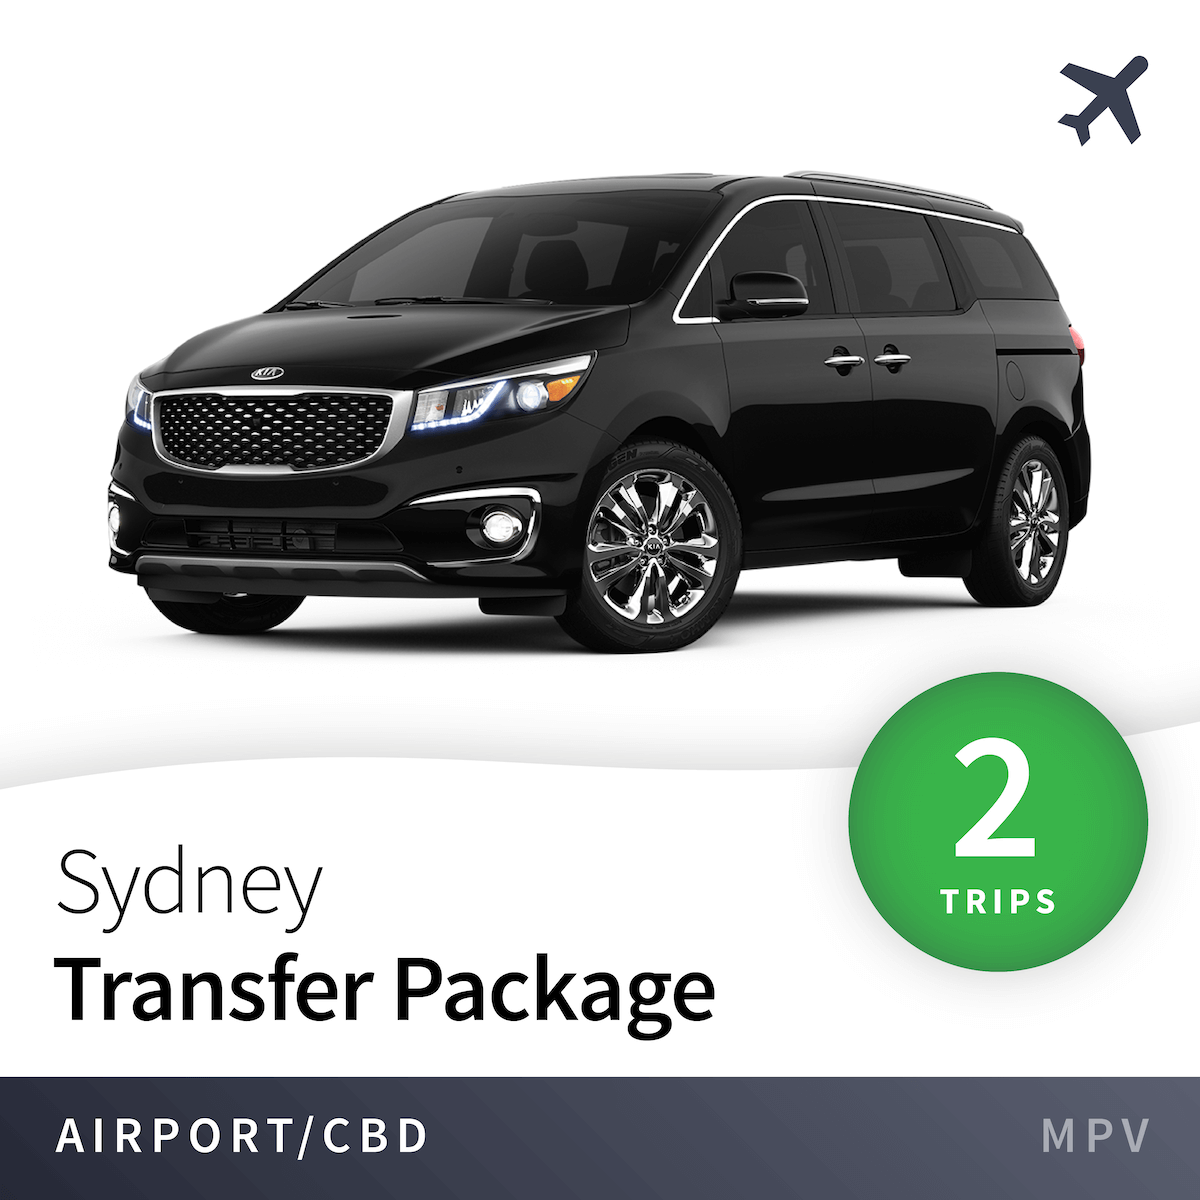 Sydney Airport Transfer Package - MPV (2 Trips) 10